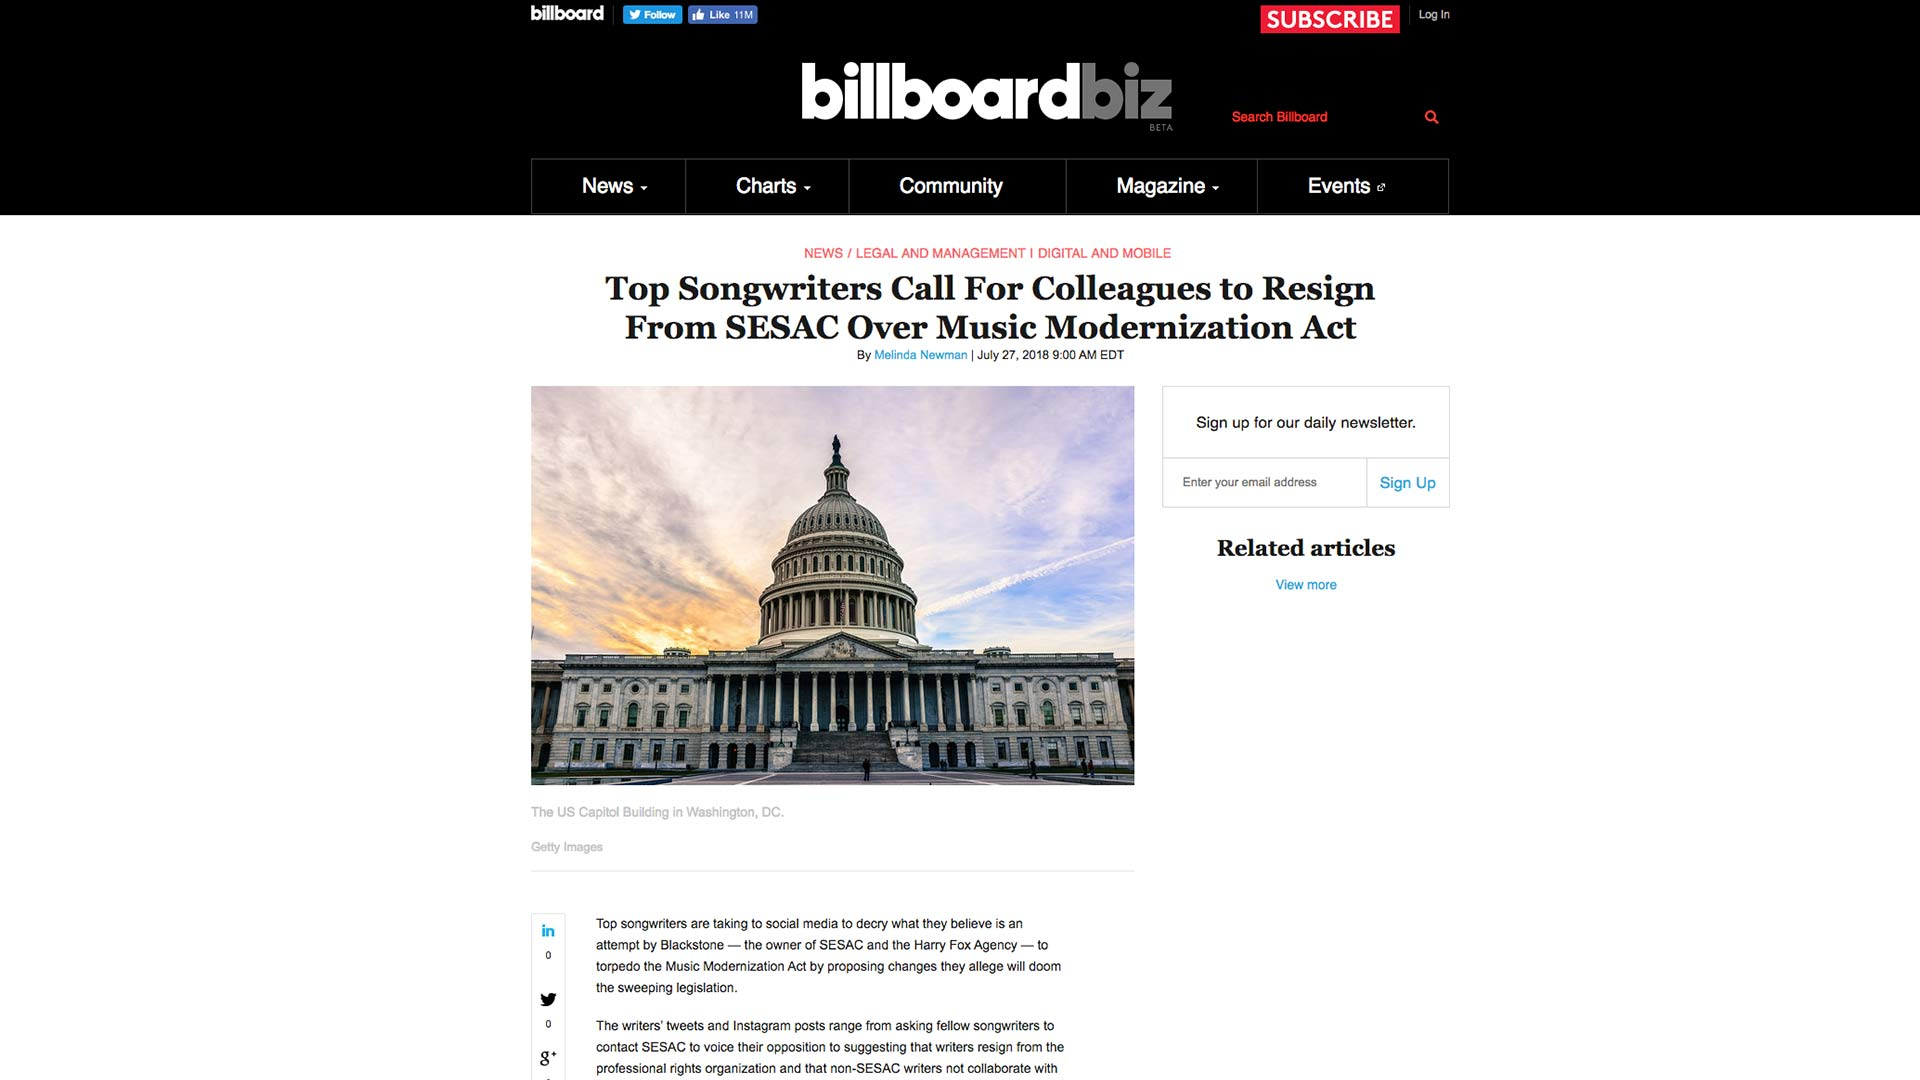 Fairness Rocks News Top Songwriters Call For Colleagues to Resign From SESAC Over Music Modernization Act